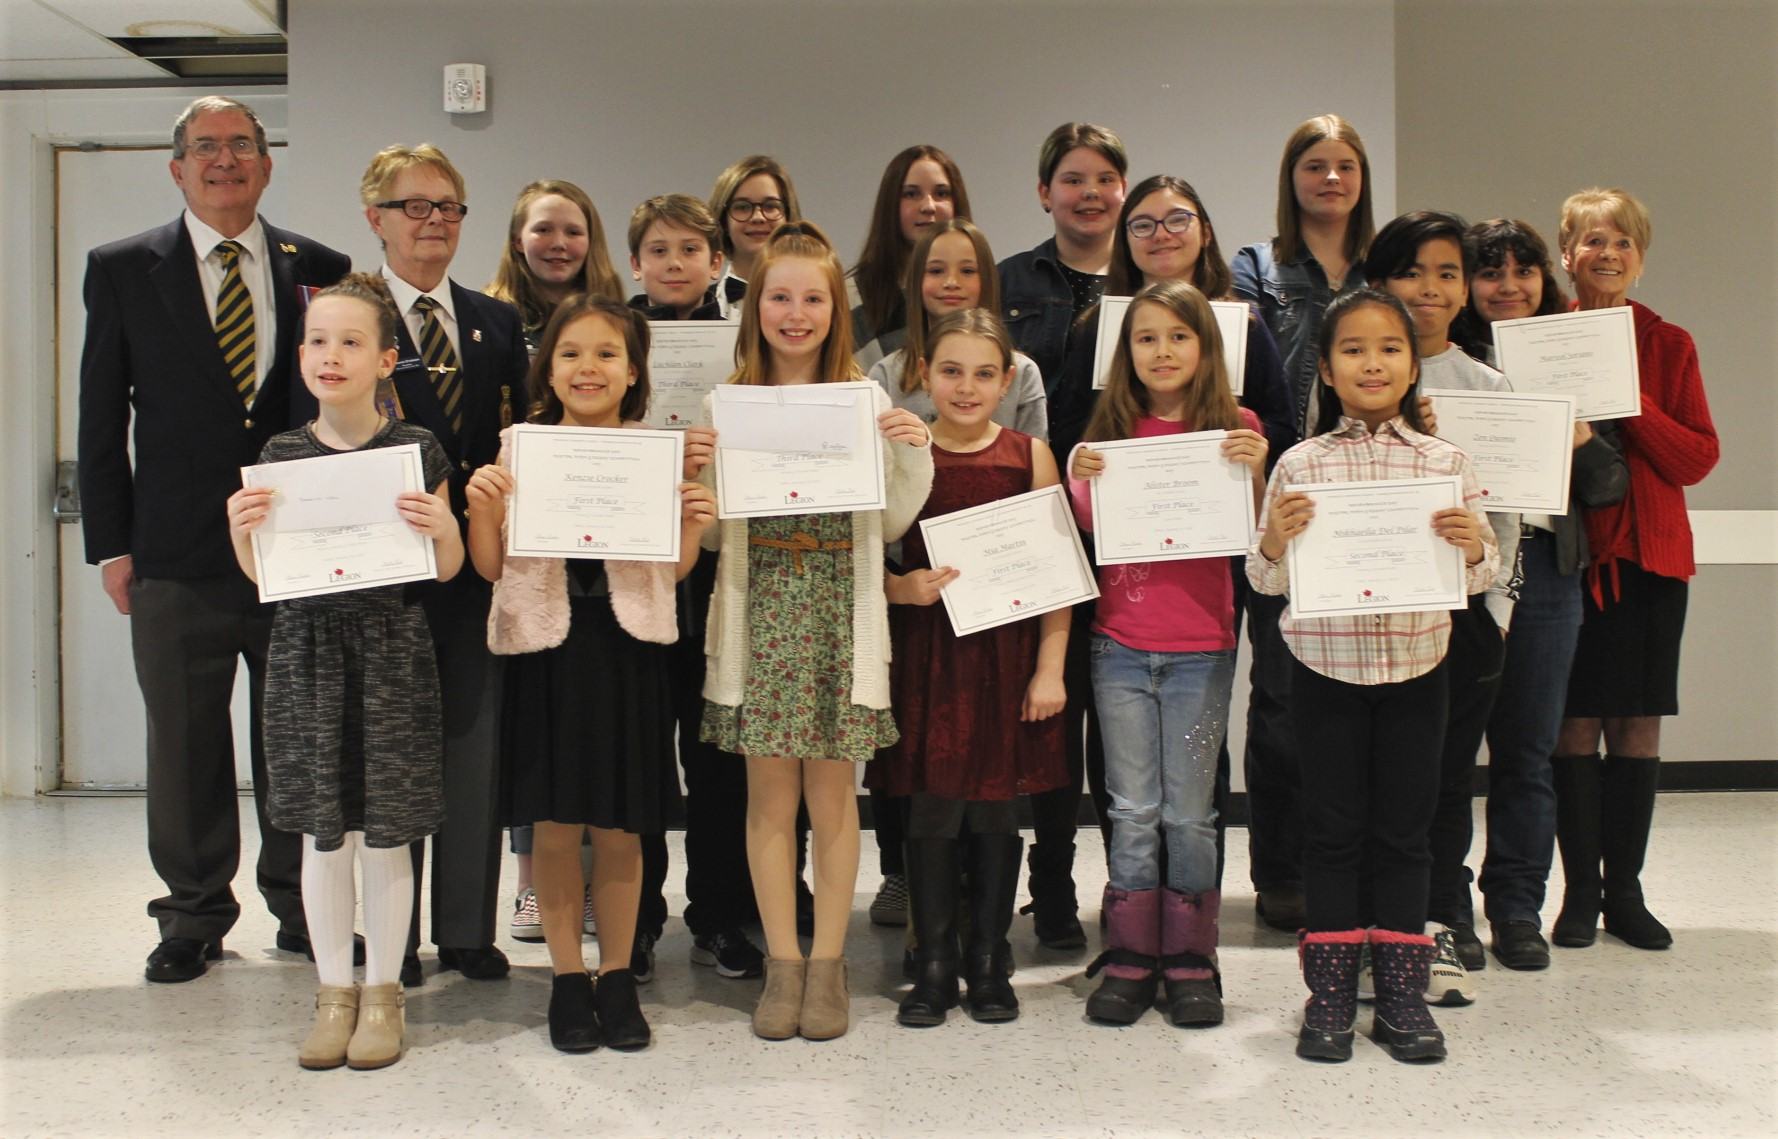 Legion hands out annual awards to deserving students